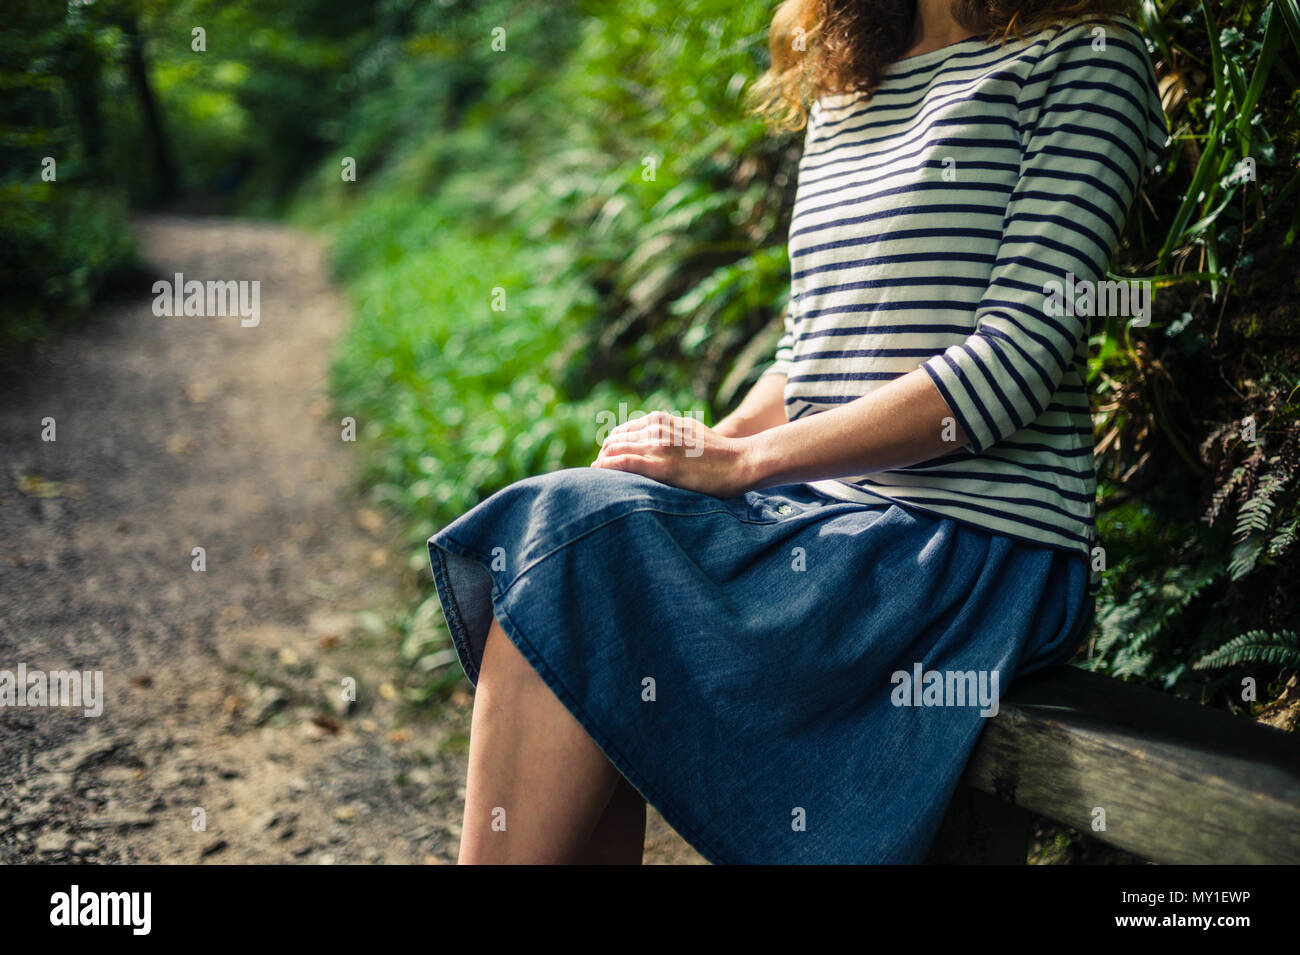 A young woman is sitting and resting on a bench in the forest - Stock Image